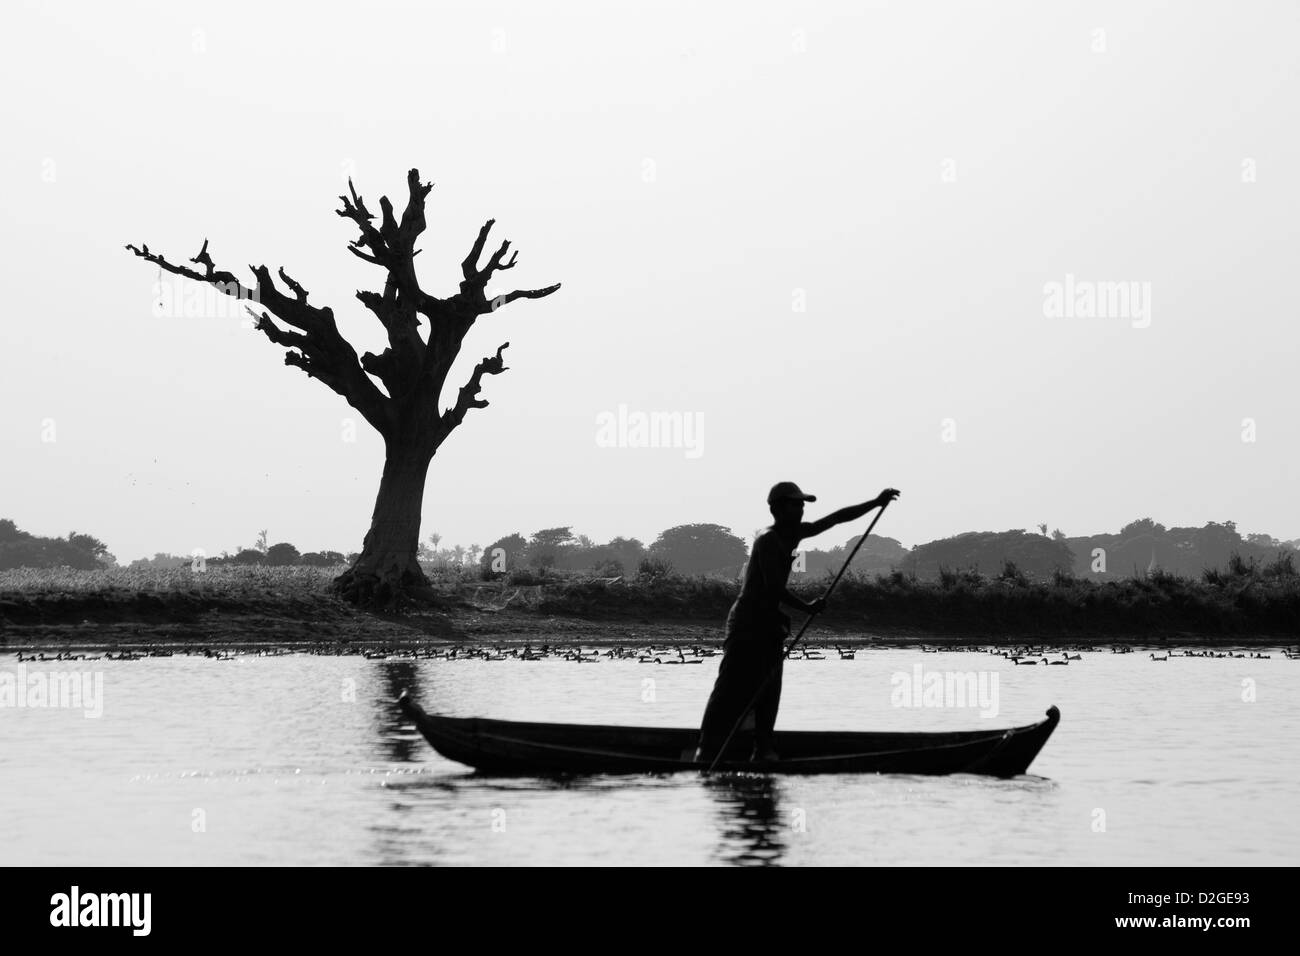 Fisherman on Irrawaddy River Myanmar - Stock Image